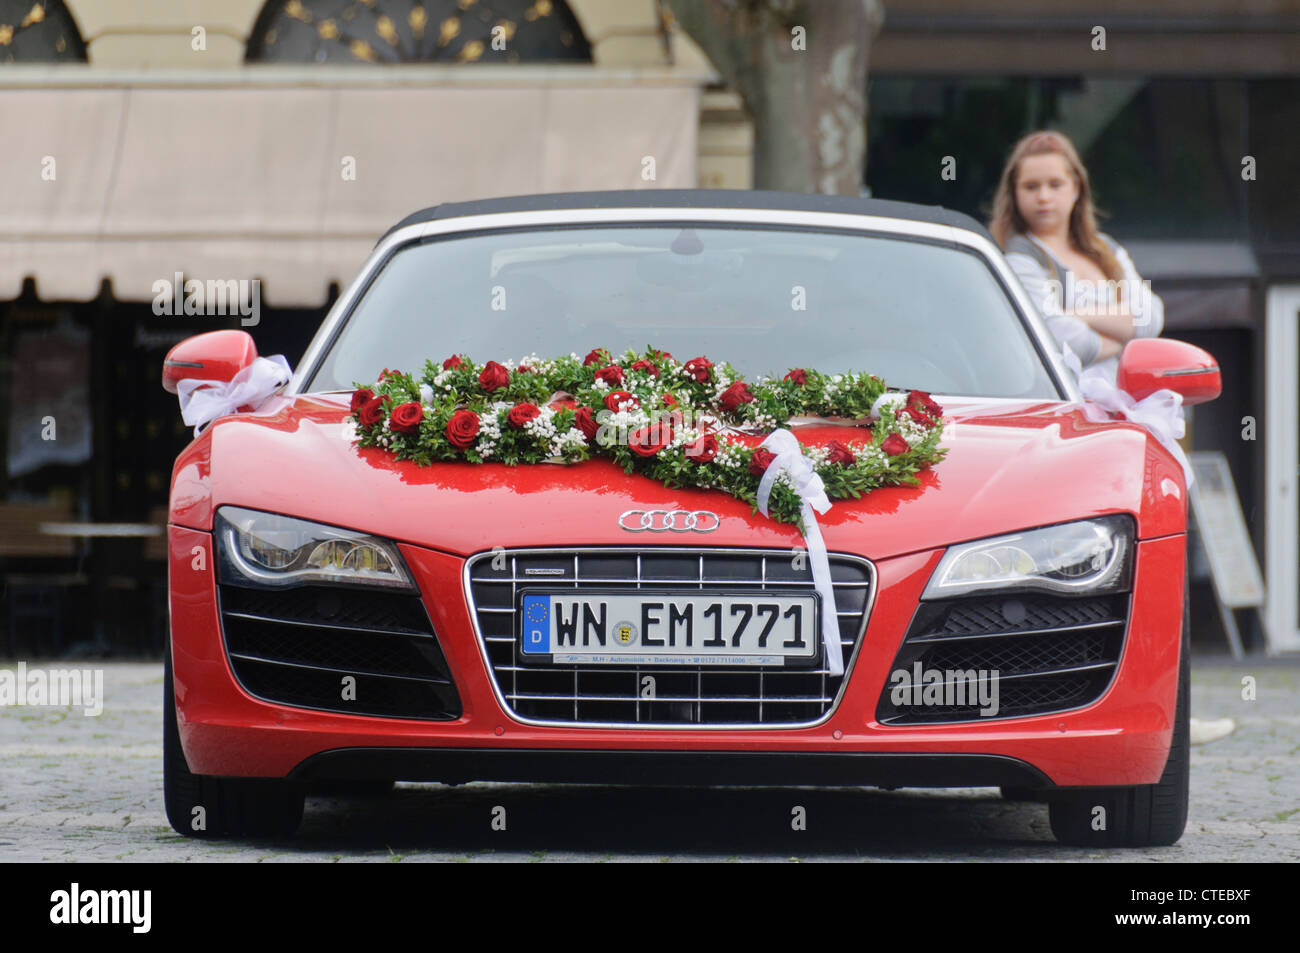 audi r8 convertible red. red audi r8 quattro v10 convertible wedding car luxury roadster vehicle with flower bouquet on bonnet hood heilbronn germany